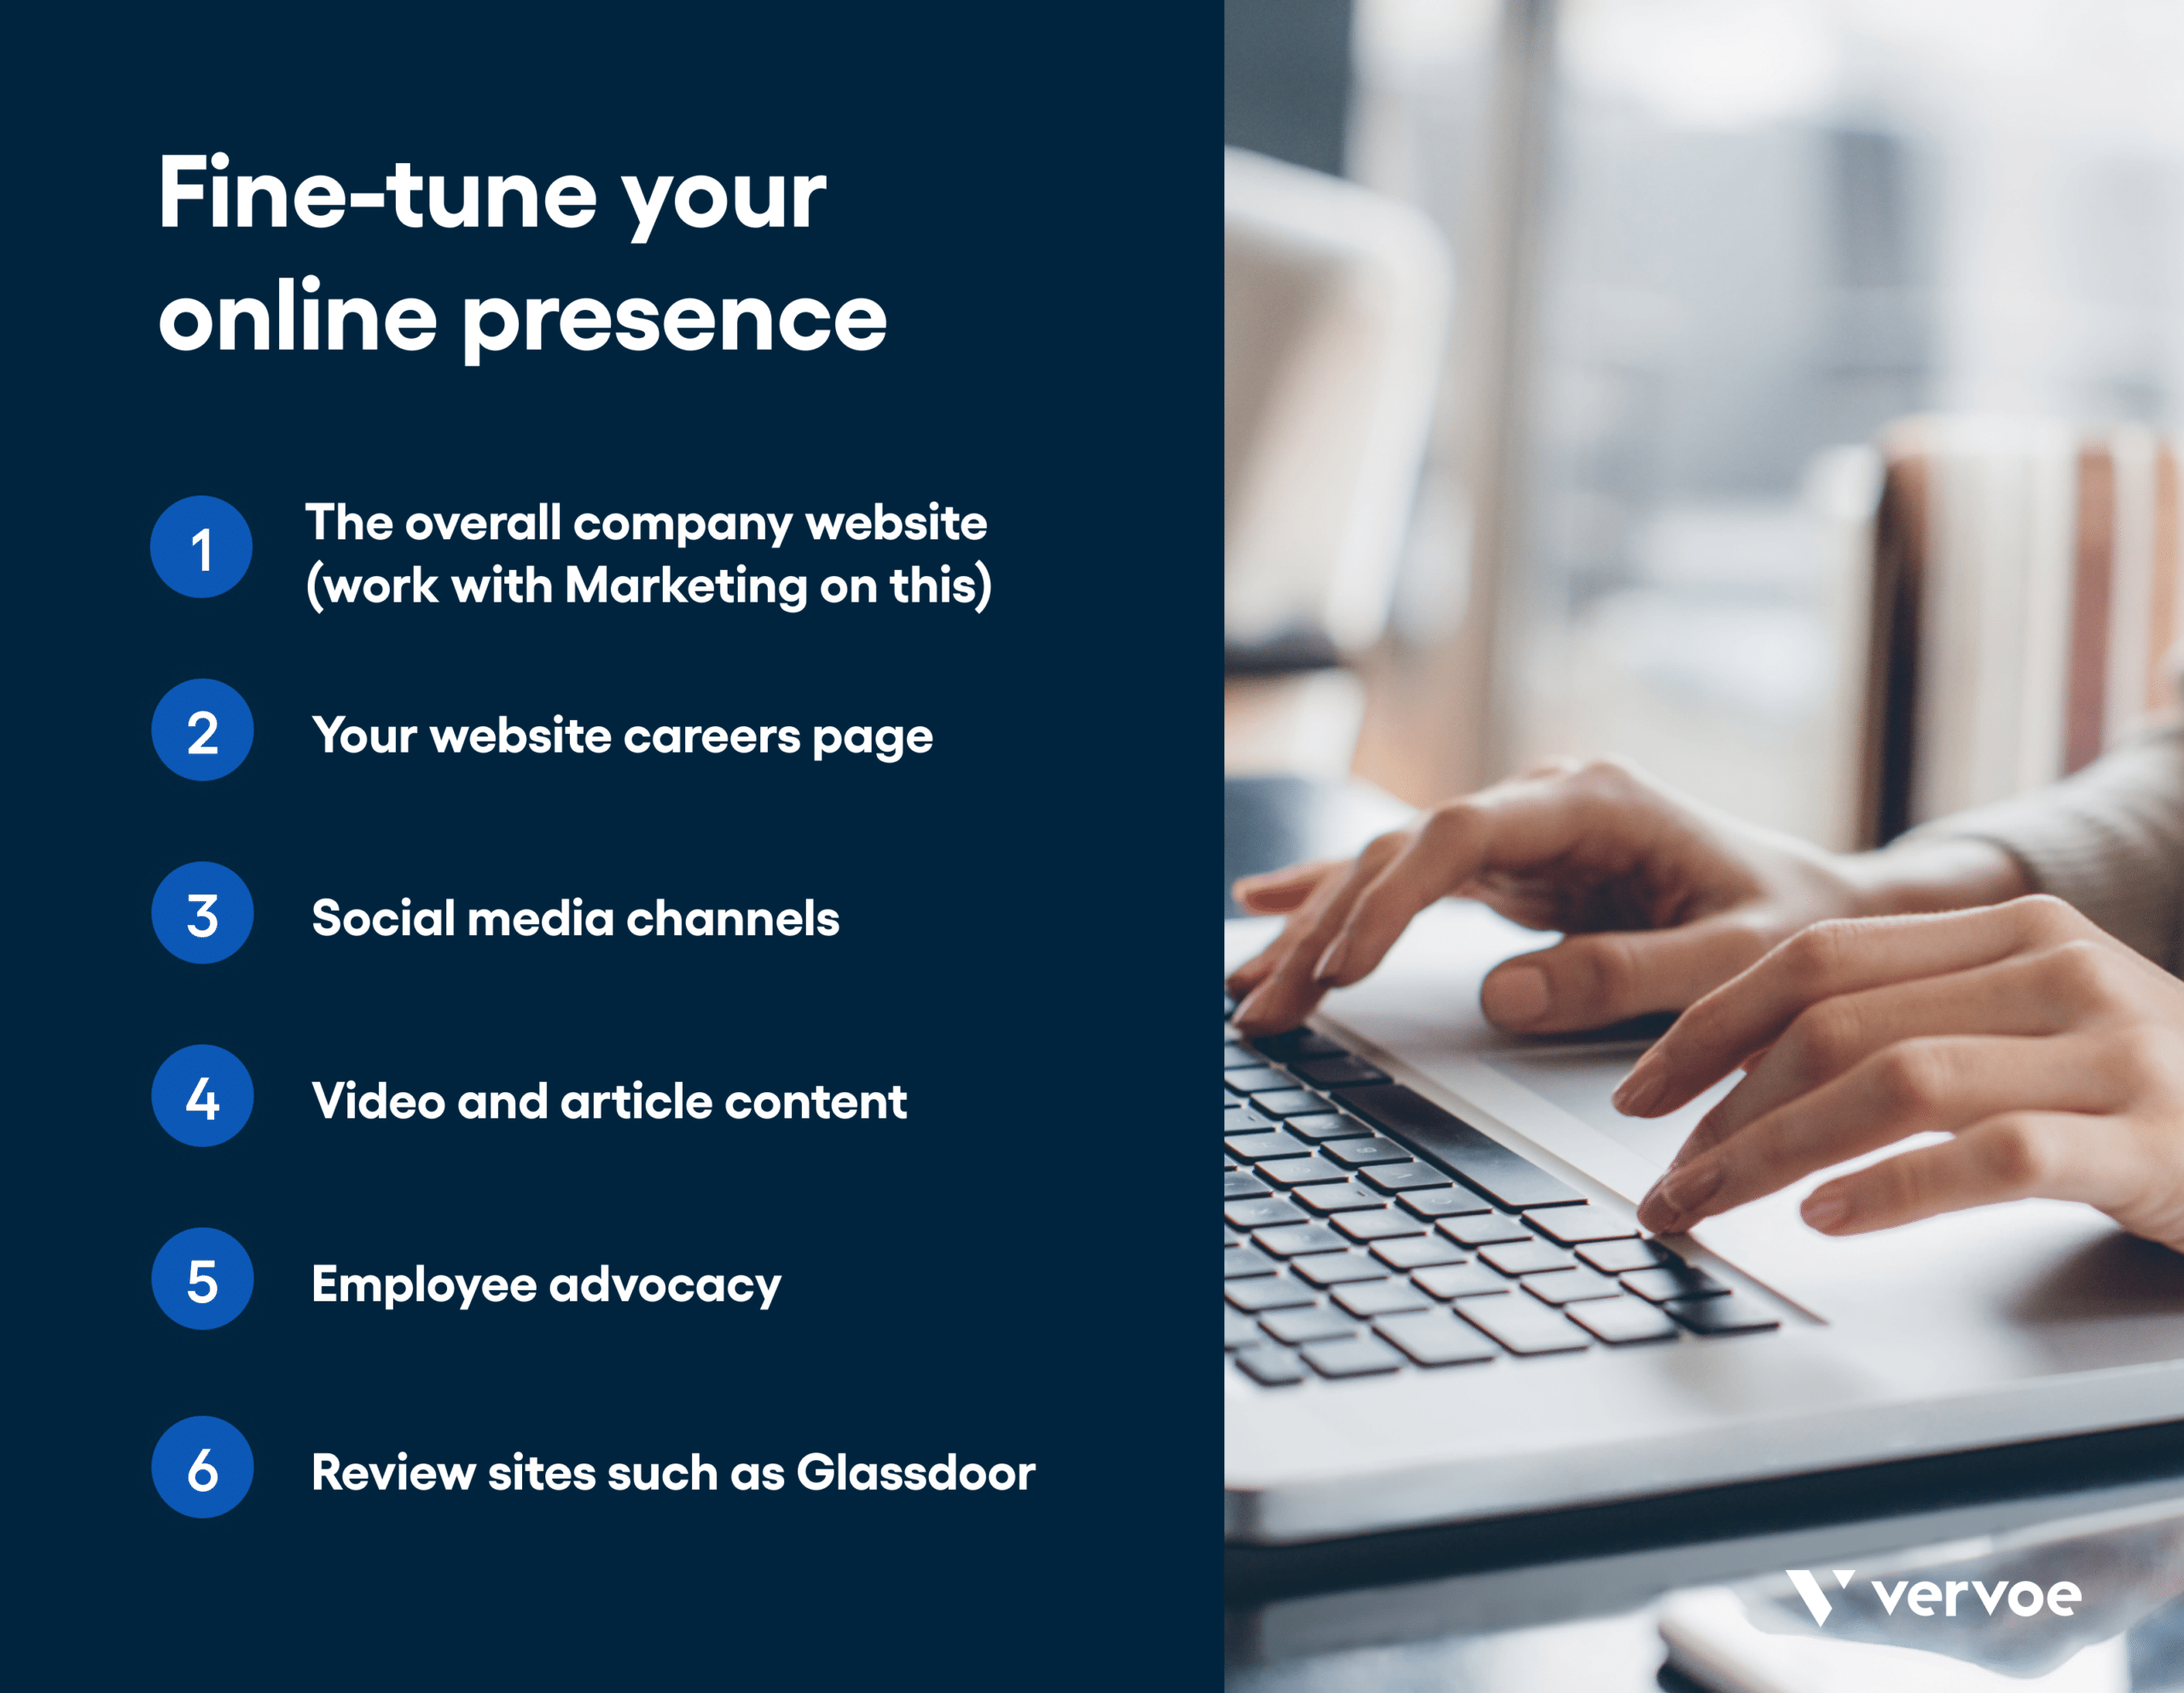 Infographic showing ways to fine-tune your online presence